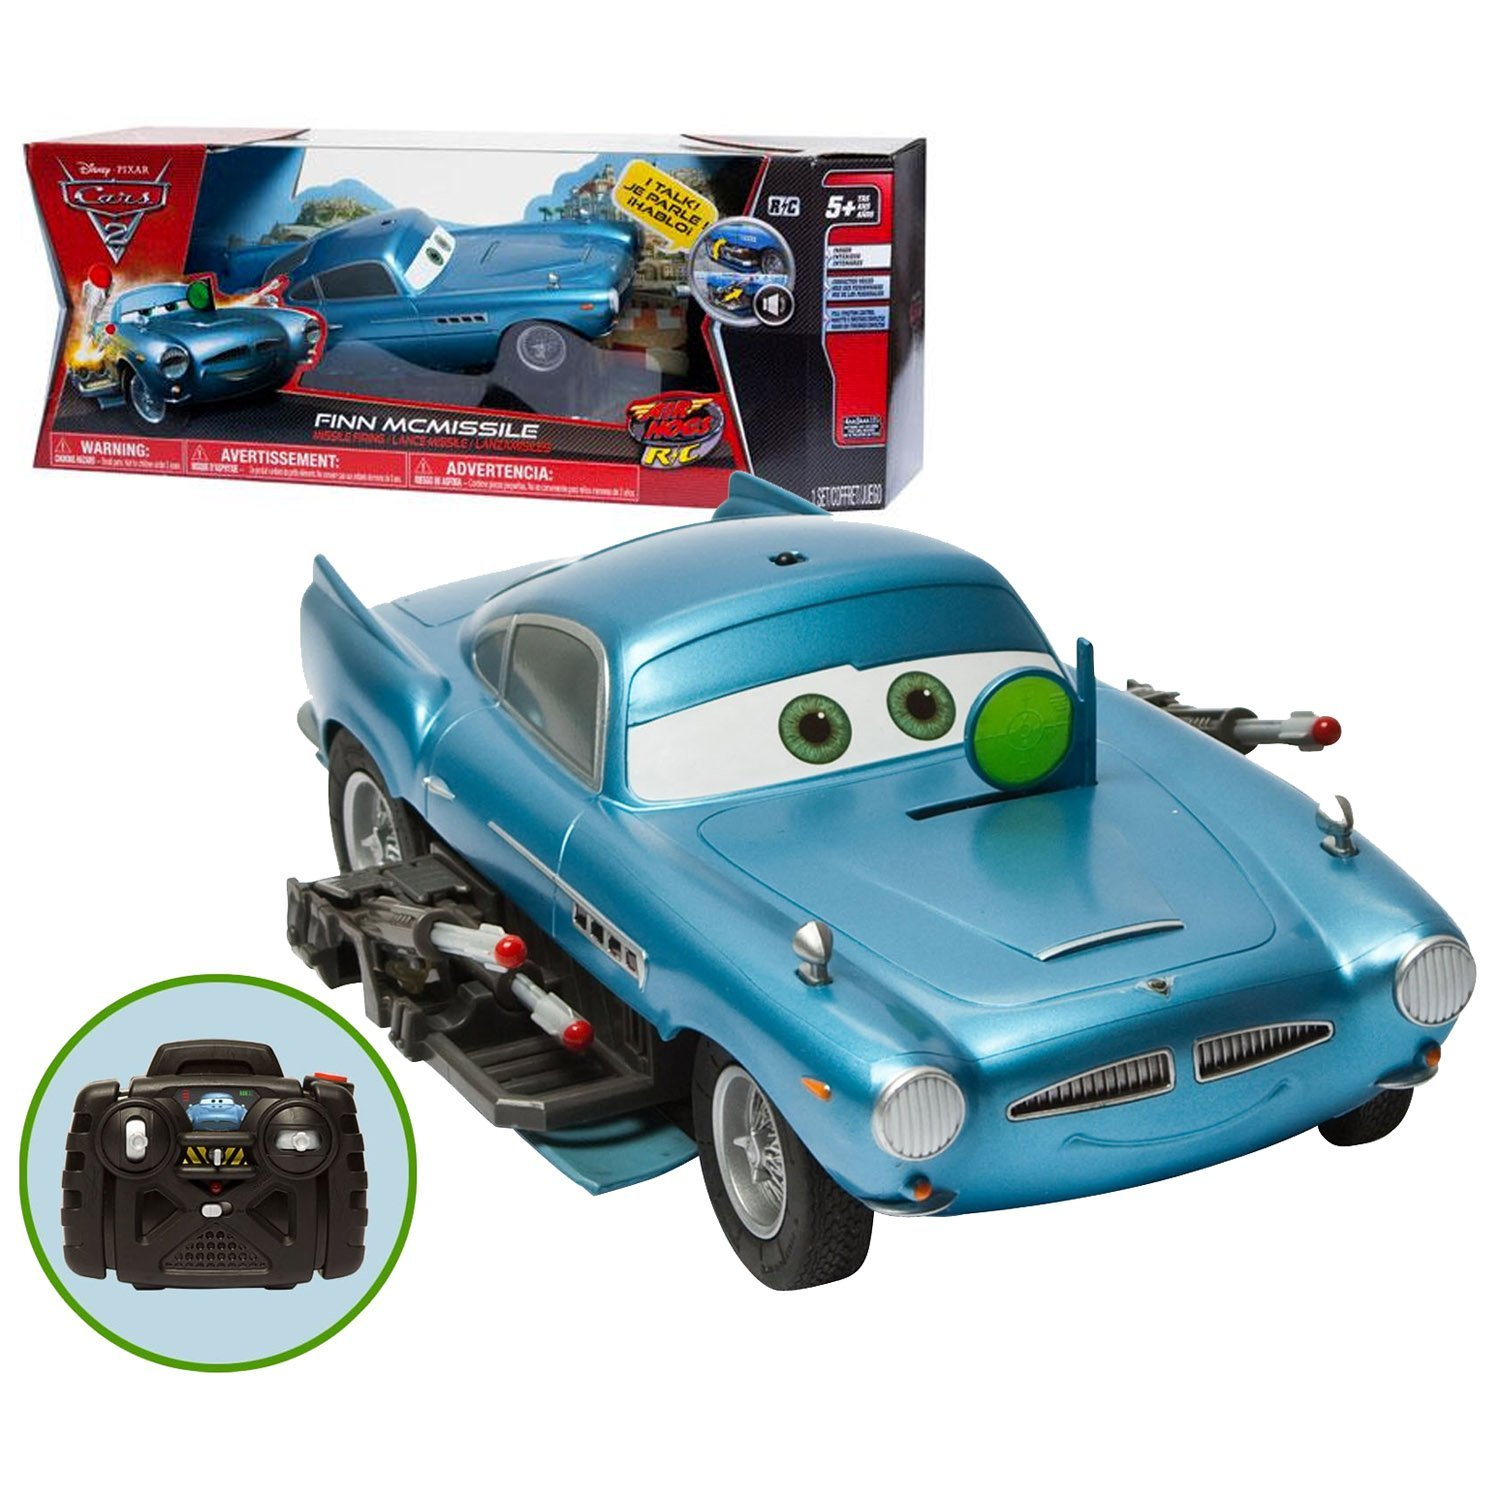 """Spin Master Year 2011 Disney Pixar Movie Series """"Cars 2"""" Air Hogs R/C Indoor Remote Control Car - FINN MCMISSILE with Full Function Control, Character Voice and Missile Firing Features Plus 3 Targets, 10 Missiles, Controller and Instruction Guide (Car Dimension: 9"""" x 4-1/2"""" x 2"""")"""